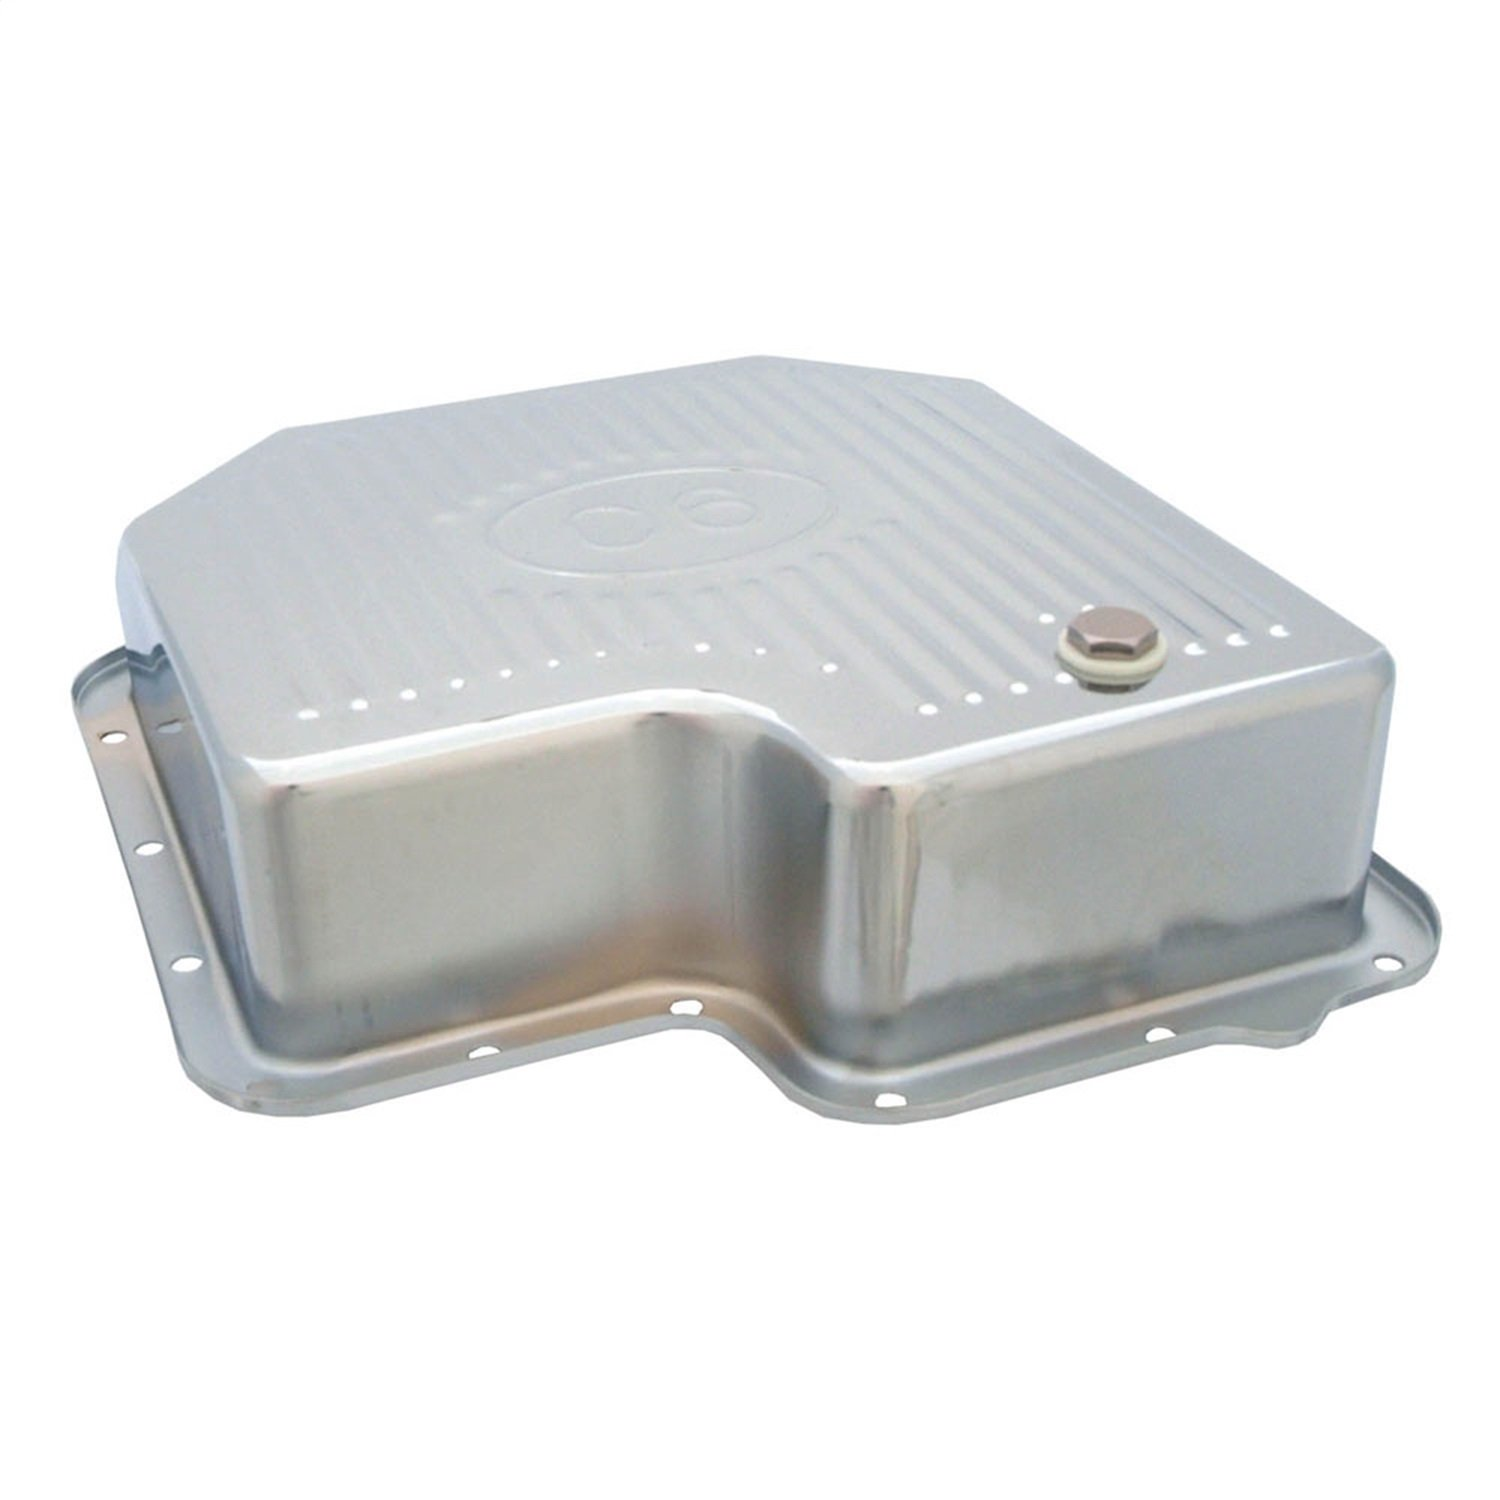 Spectre Performance 5464 Chrome Extra Capacity Transmission Pan Ford C6 by Spectre Performance